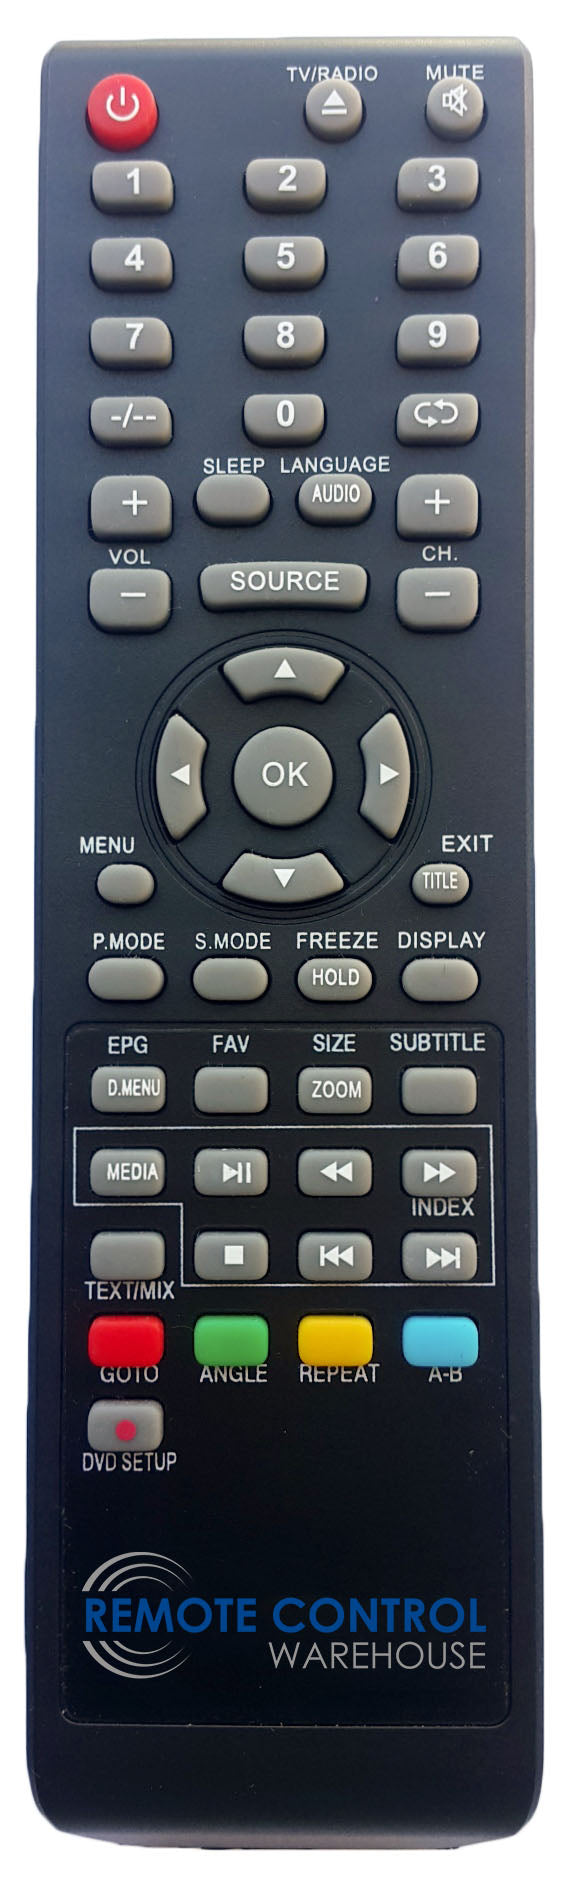 REPLACEMENT VIVID REMOTE CONTROL - AT-23LEC1   AT23LEC1  LCD TV - Remote Control Warehouse